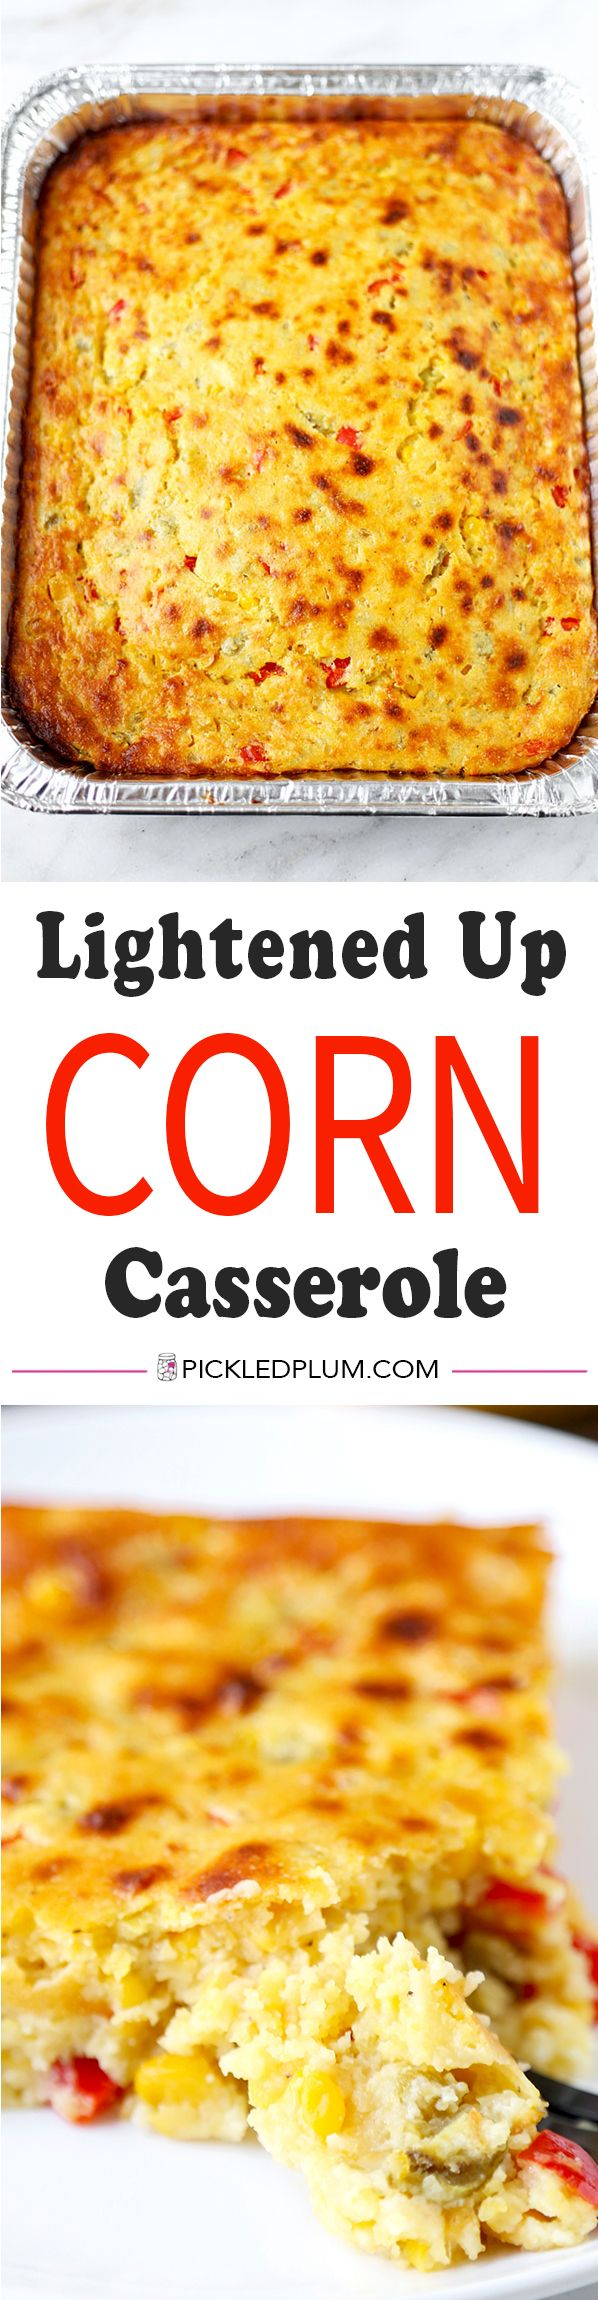 Lightened Up Corn Casserole - This Lightened Up Corn Casserole Recipe has the spirit of cornbread with the soul of a creamy autumn casserole. Ready in 40 minutes from start to finish! Recipe, Thanksgiving, side, casserole, Christmas, baked | pickledplum.com